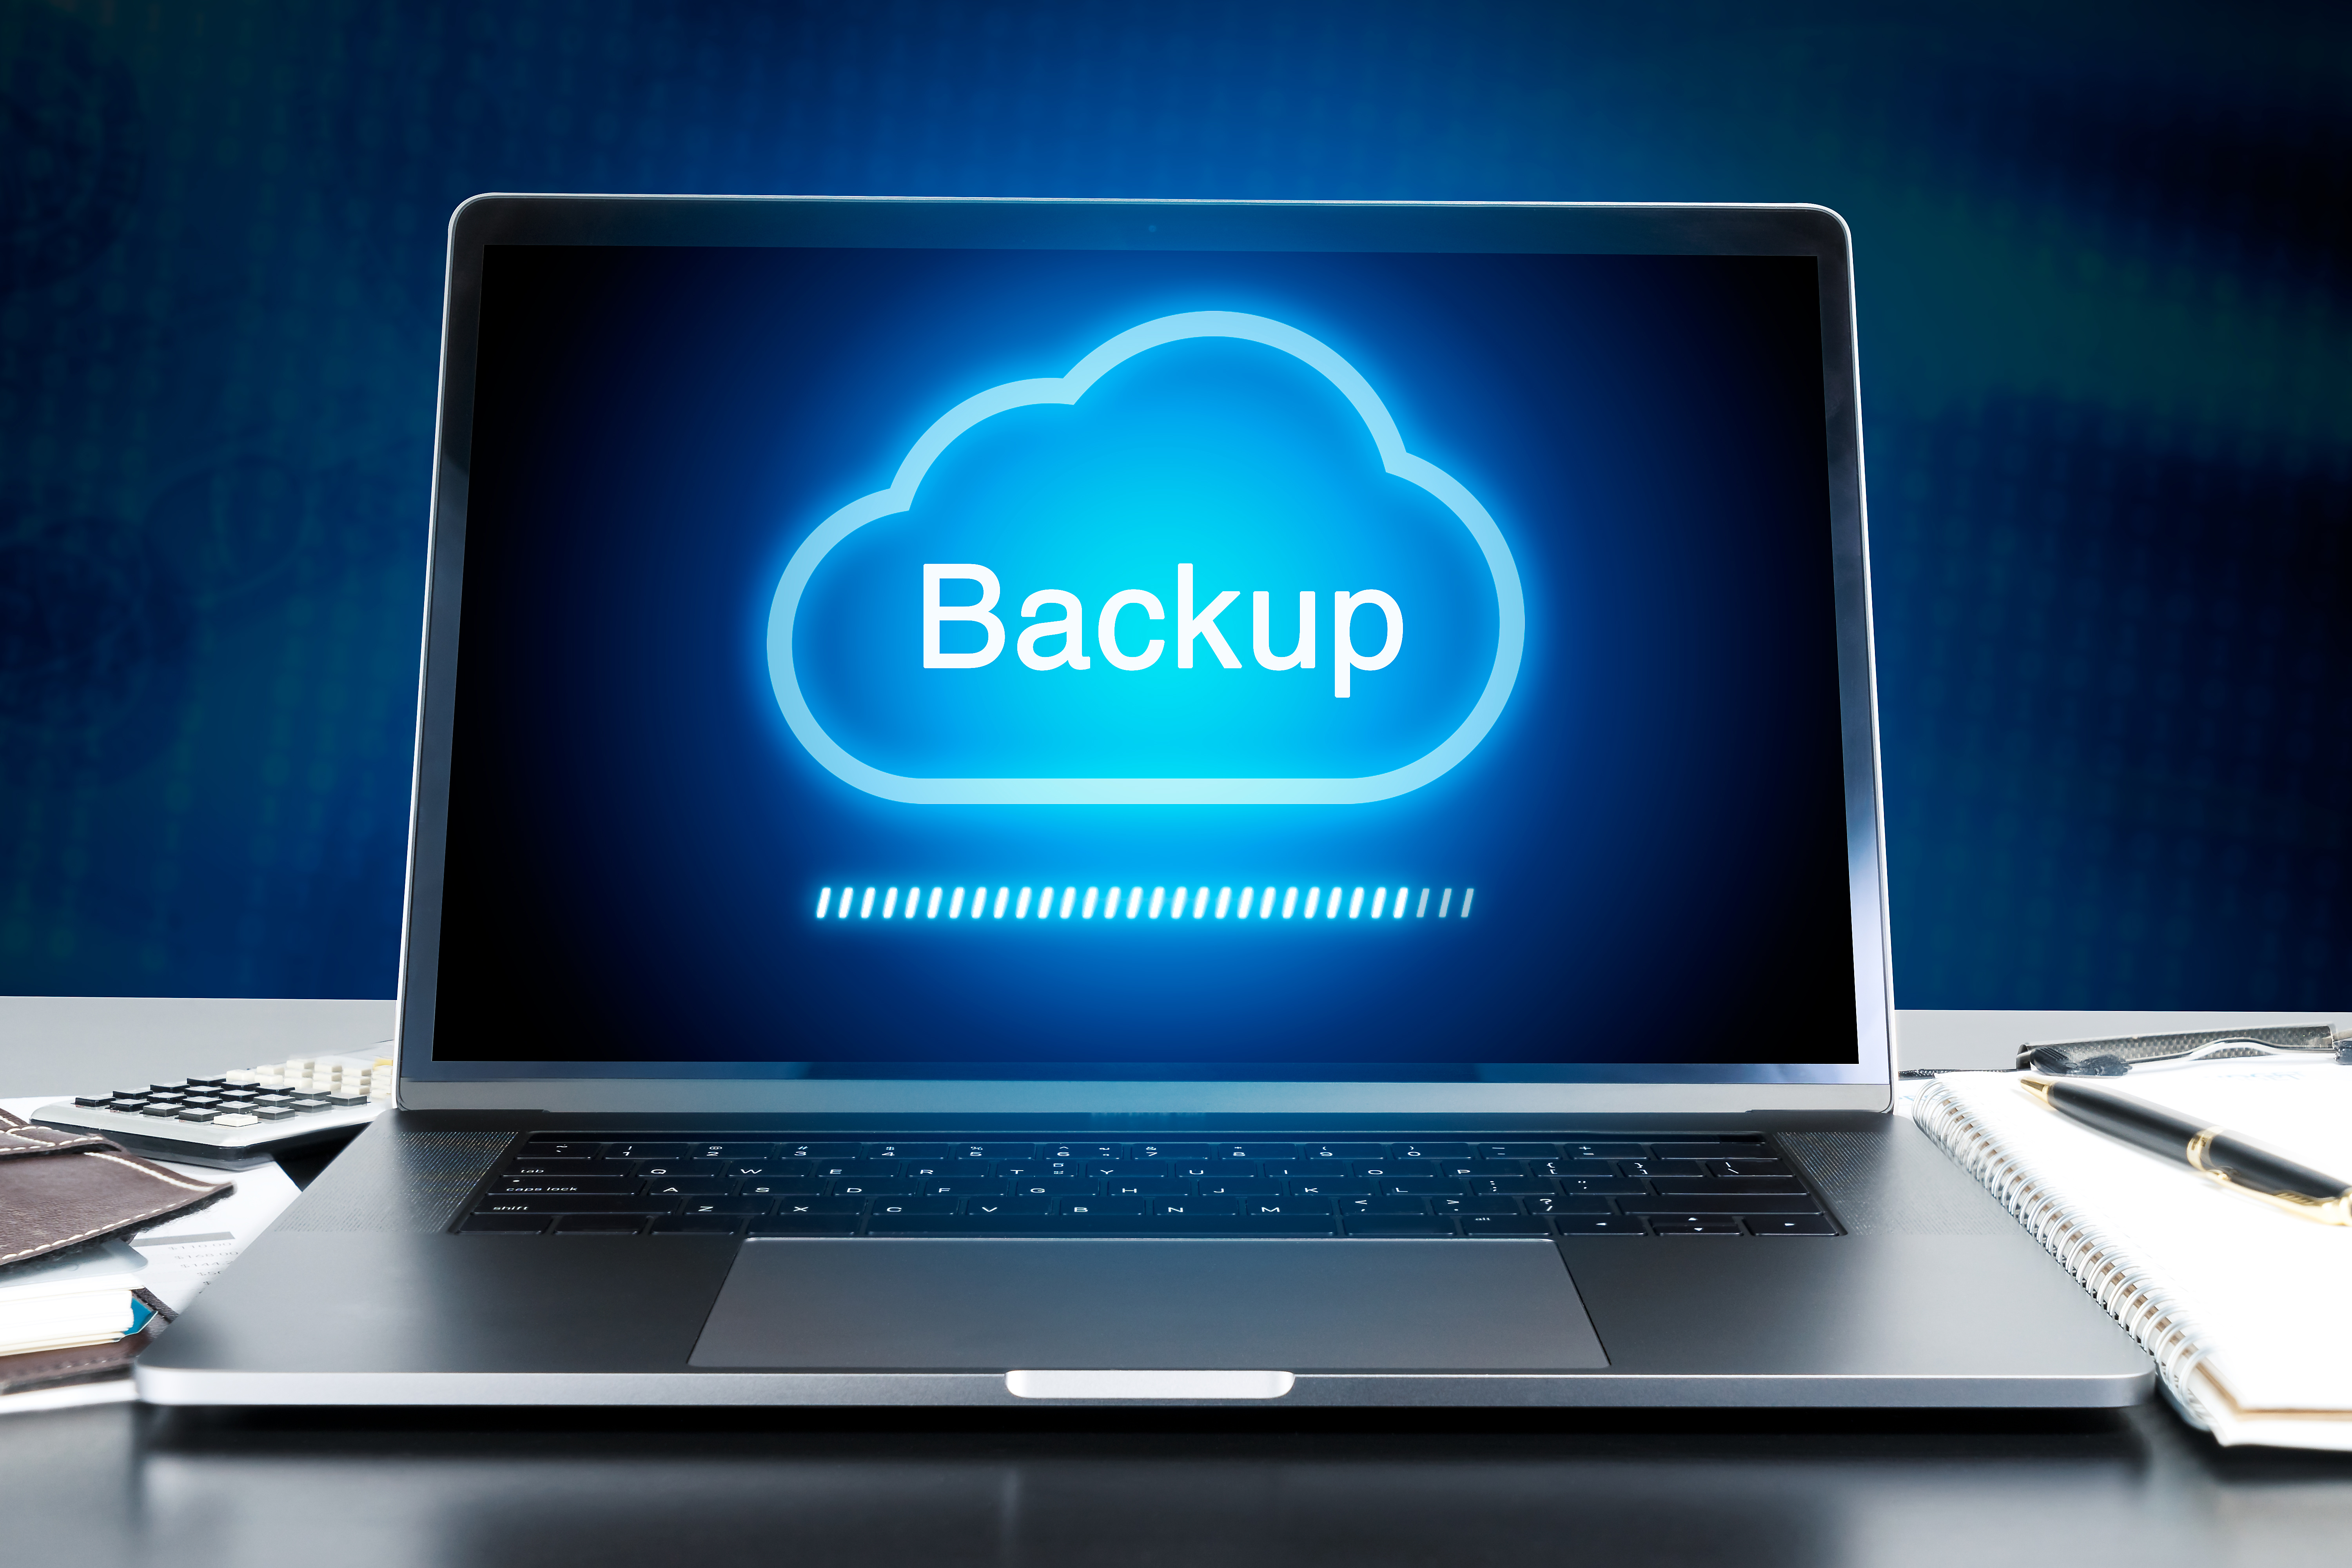 Cloud Data Backup on a laptop